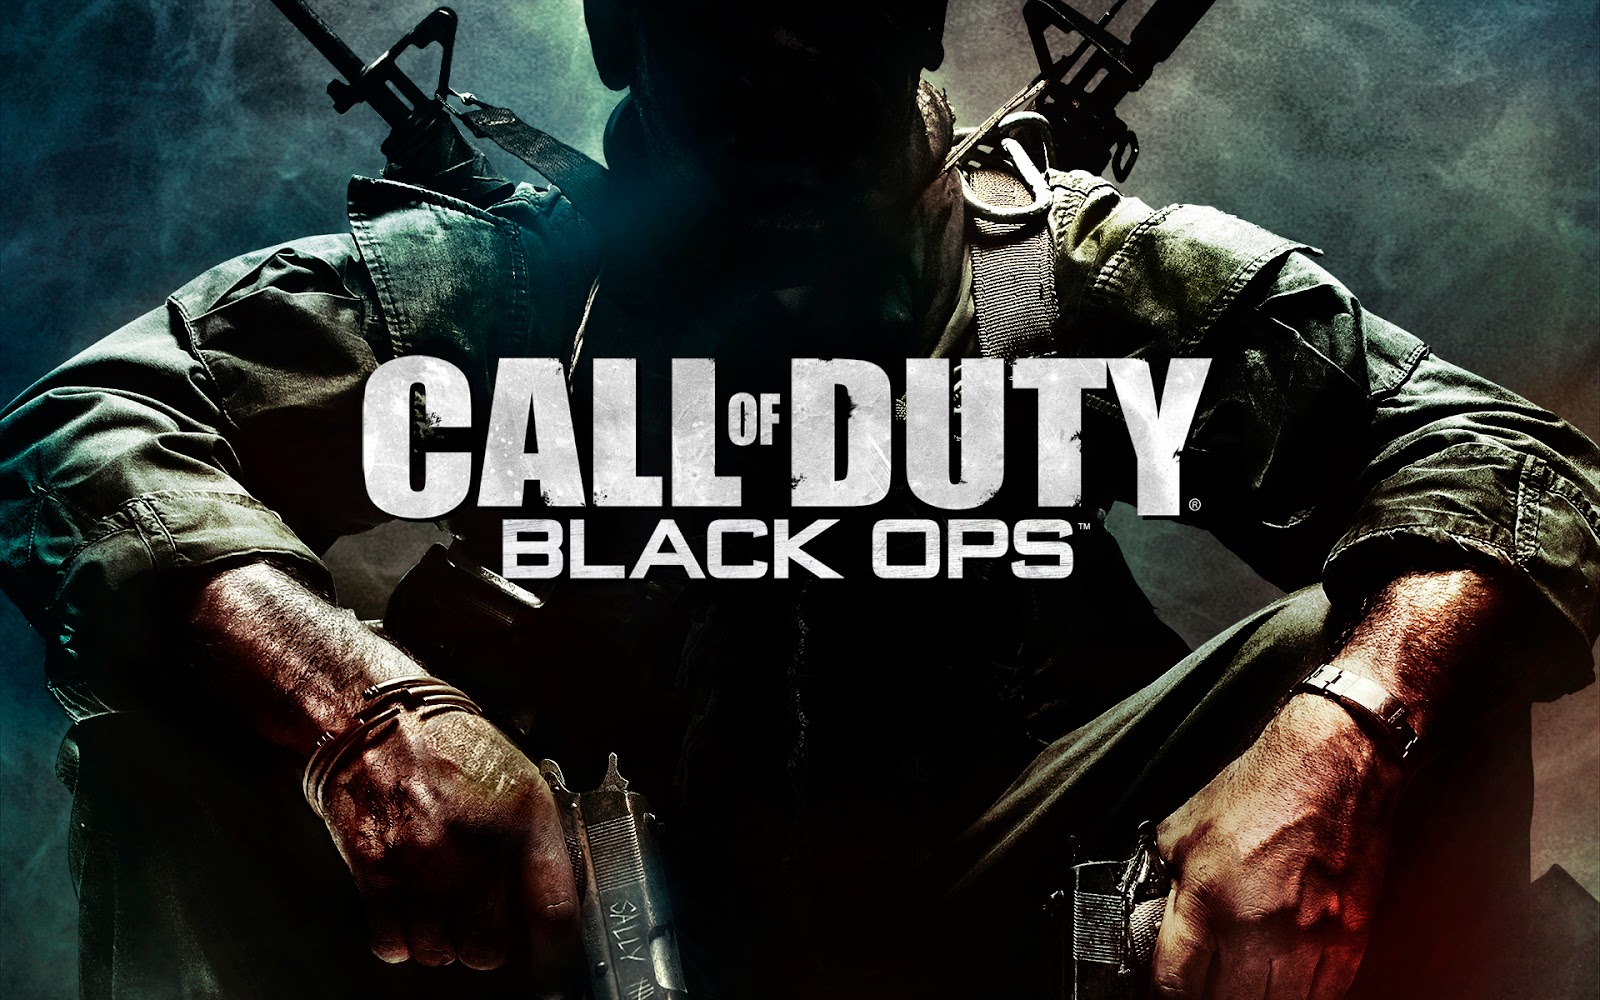 تحميل لعبة call of duty black ops 2 مضغوطة